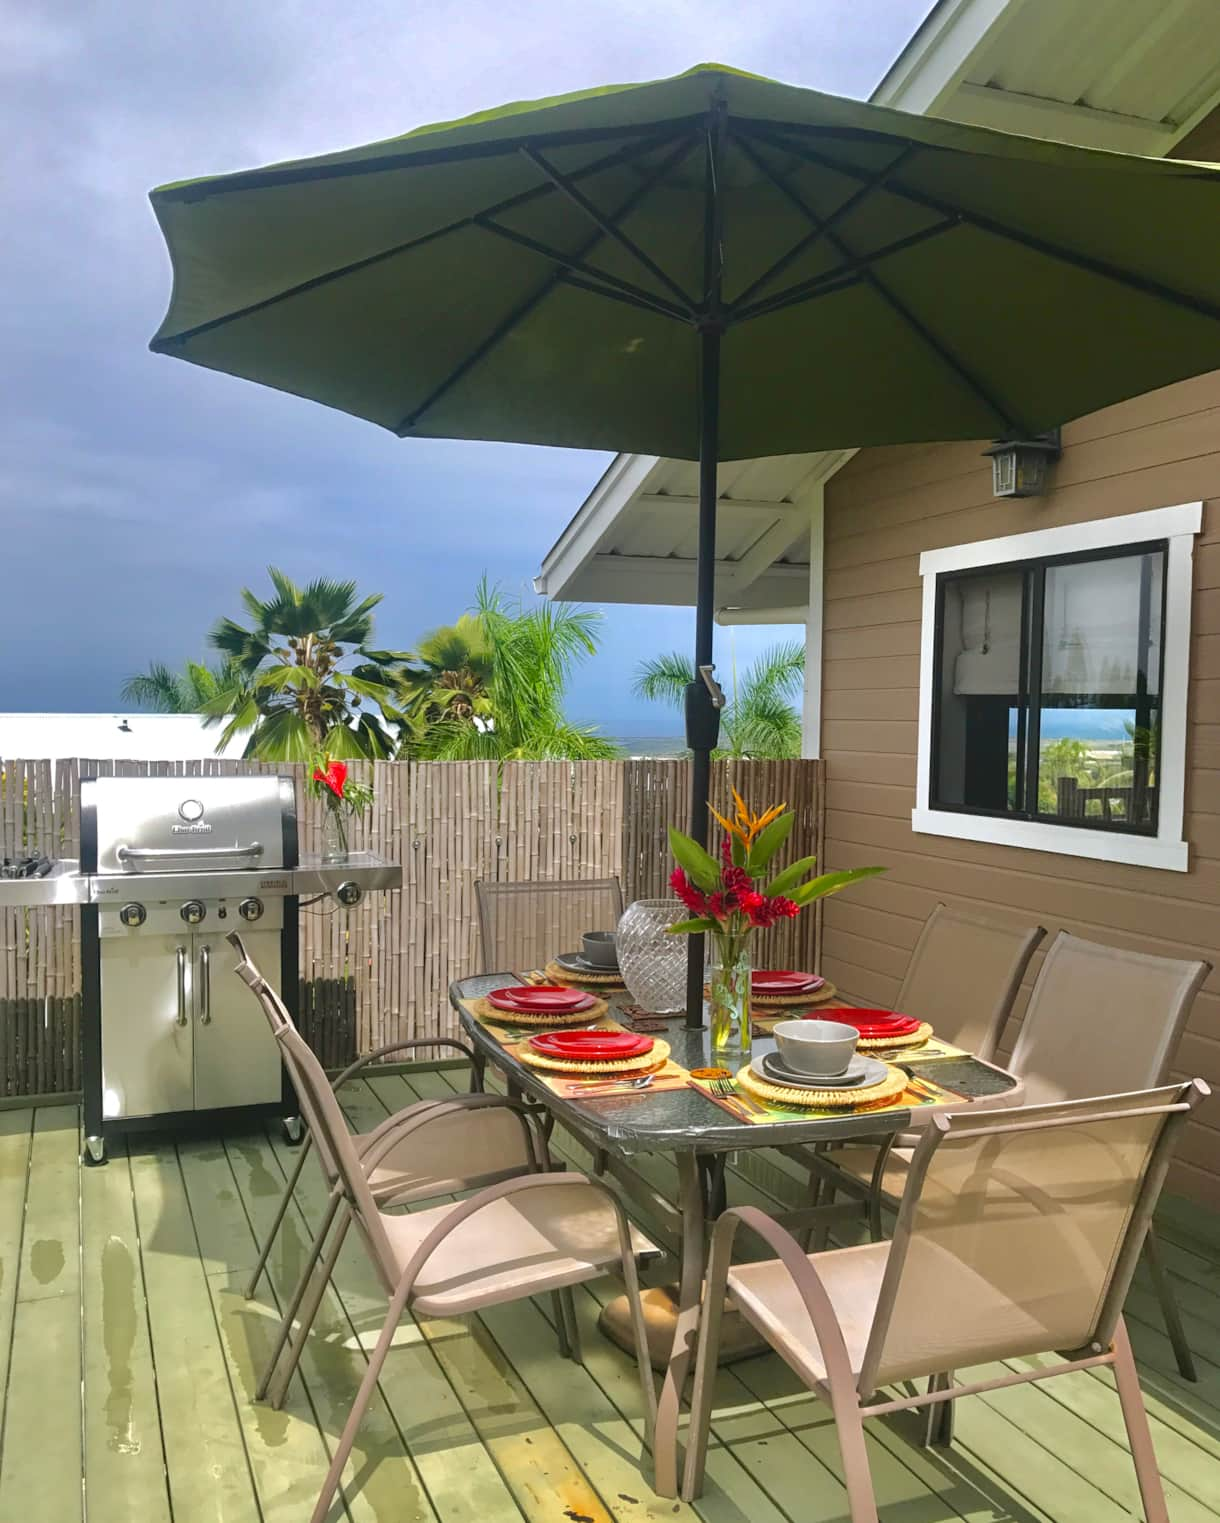 Rear lanai setting with bbq and dinner table with sunset views at the Hale Makamaka.